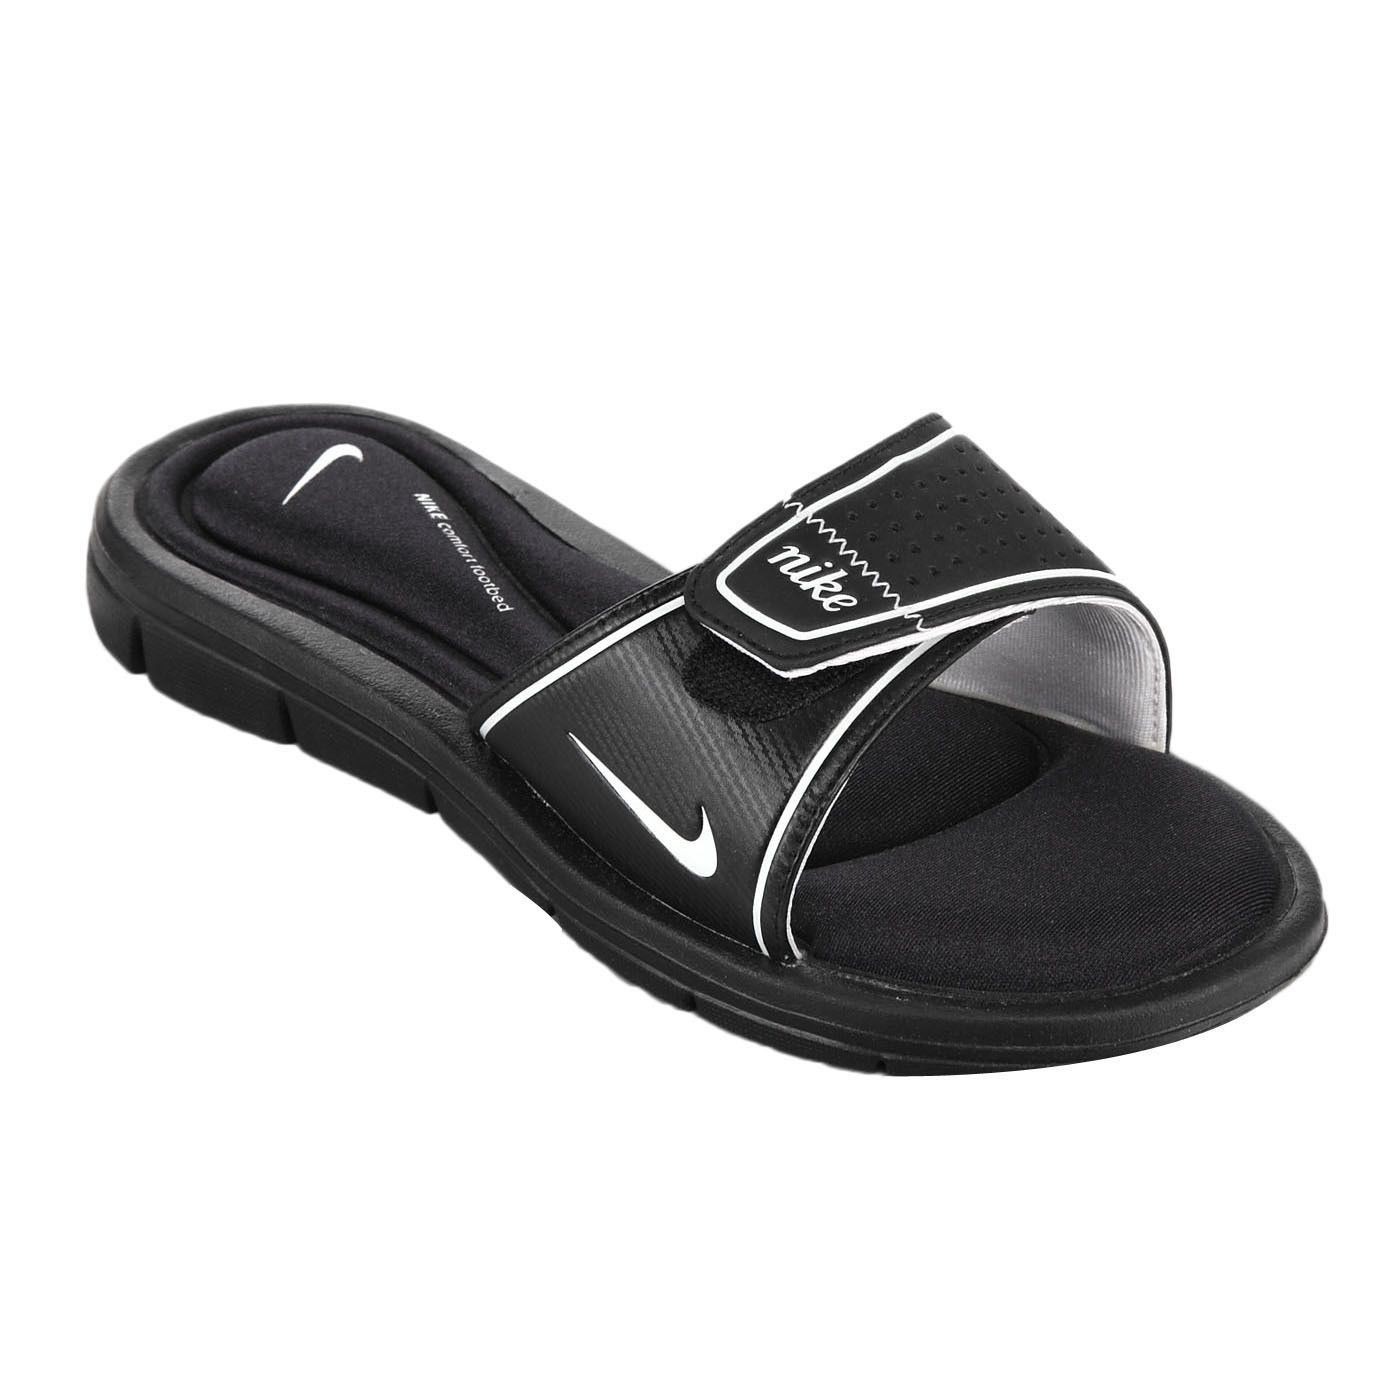 latest exclusive shoes new photos Nike Slide Sandals. Gettin these! | Design